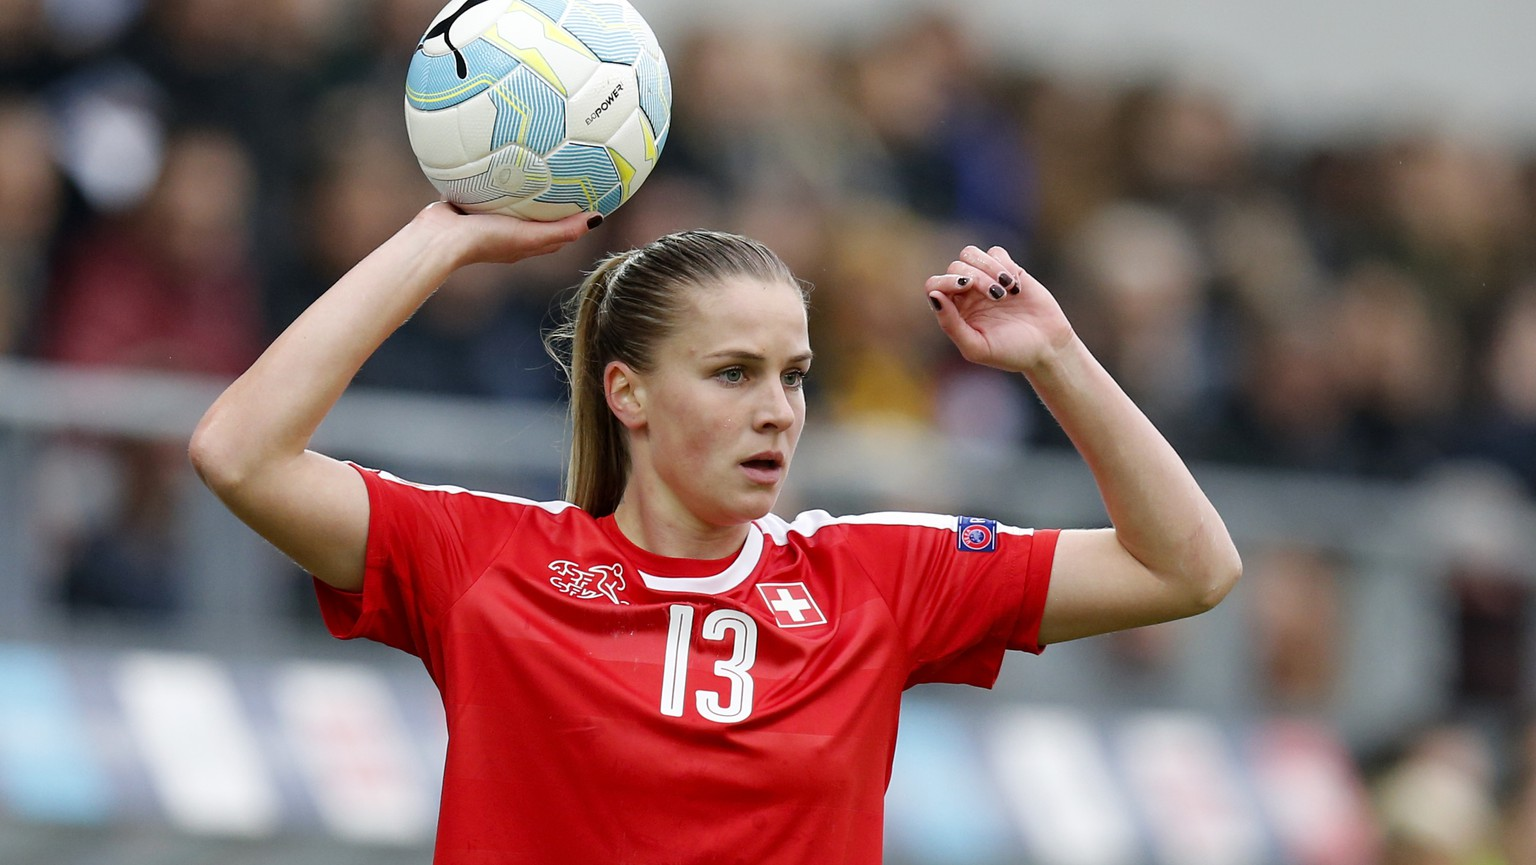 Switzerland's Ana-Maria Crnogorcevic during the UEFA Women's EURO 2017 qualifying soccer match between Switzerland and Italy at the Tissot Arena in Biel, Switzerland, Saturday, April 9, 2016. (KEYSTONE/Peter Klaunzer)